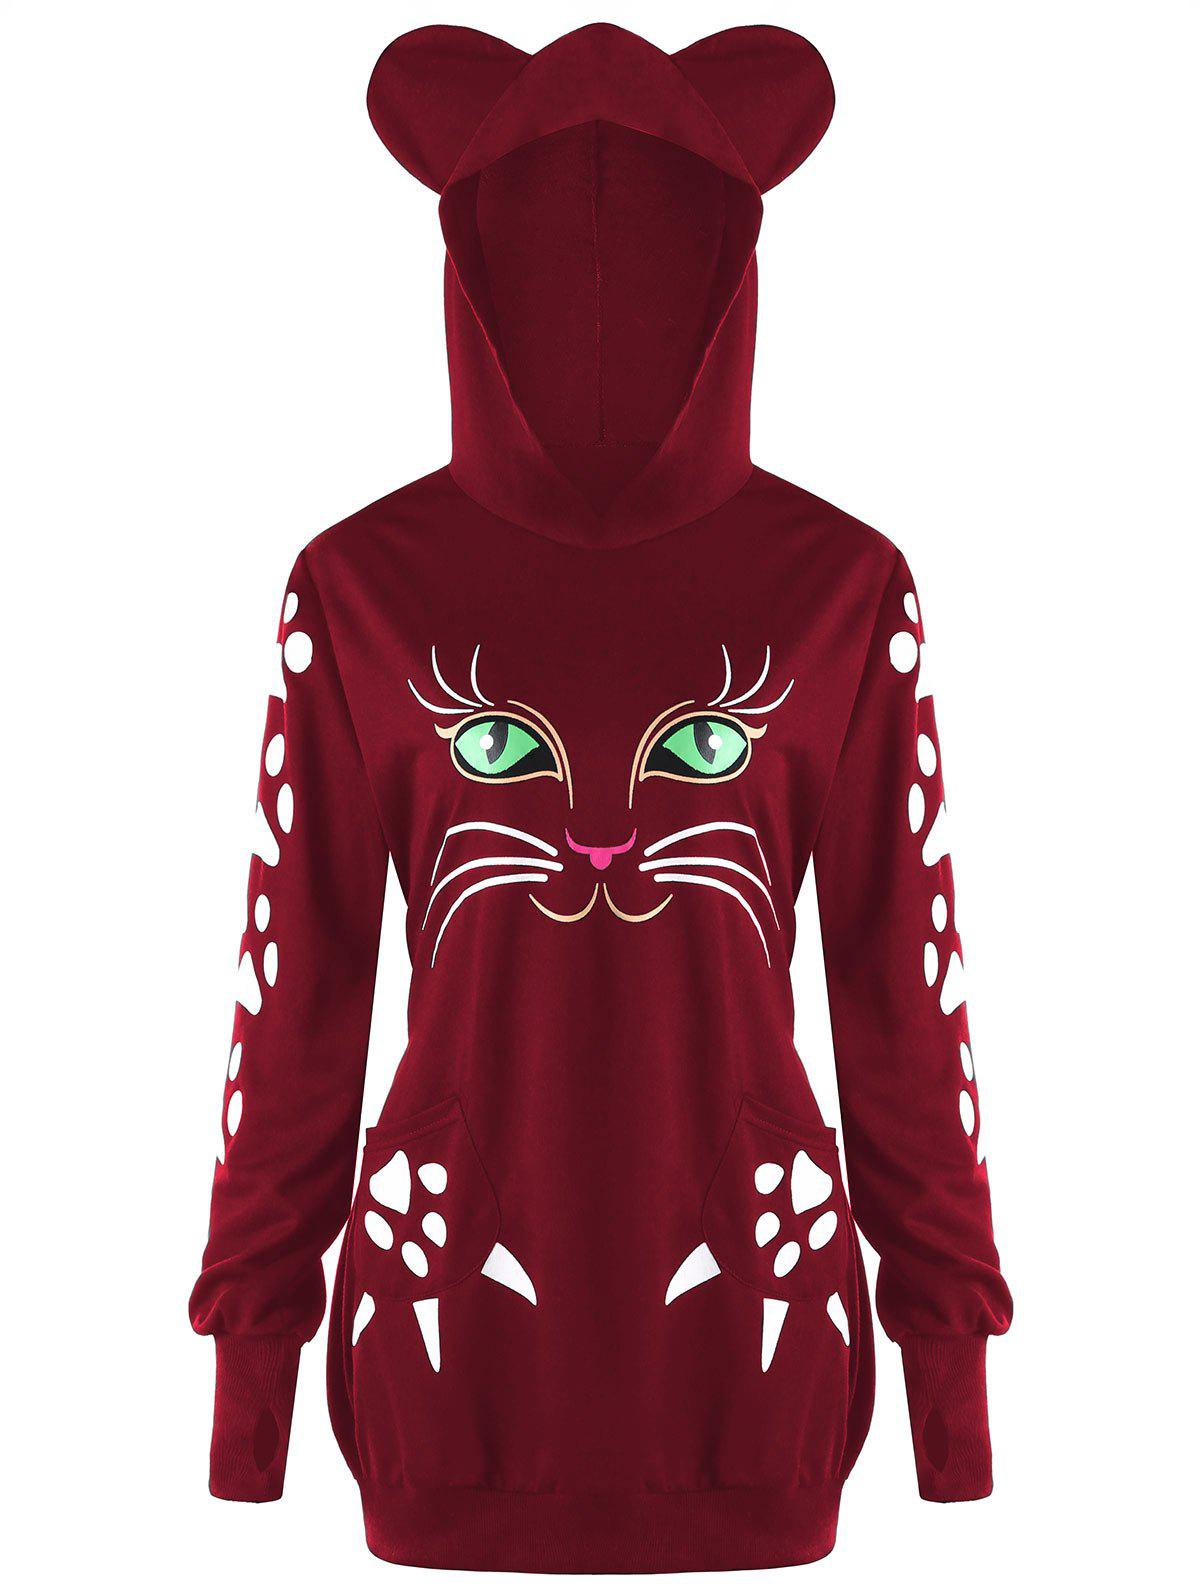 Fashion Plus Size Cat Pattern Hoodie with Ears